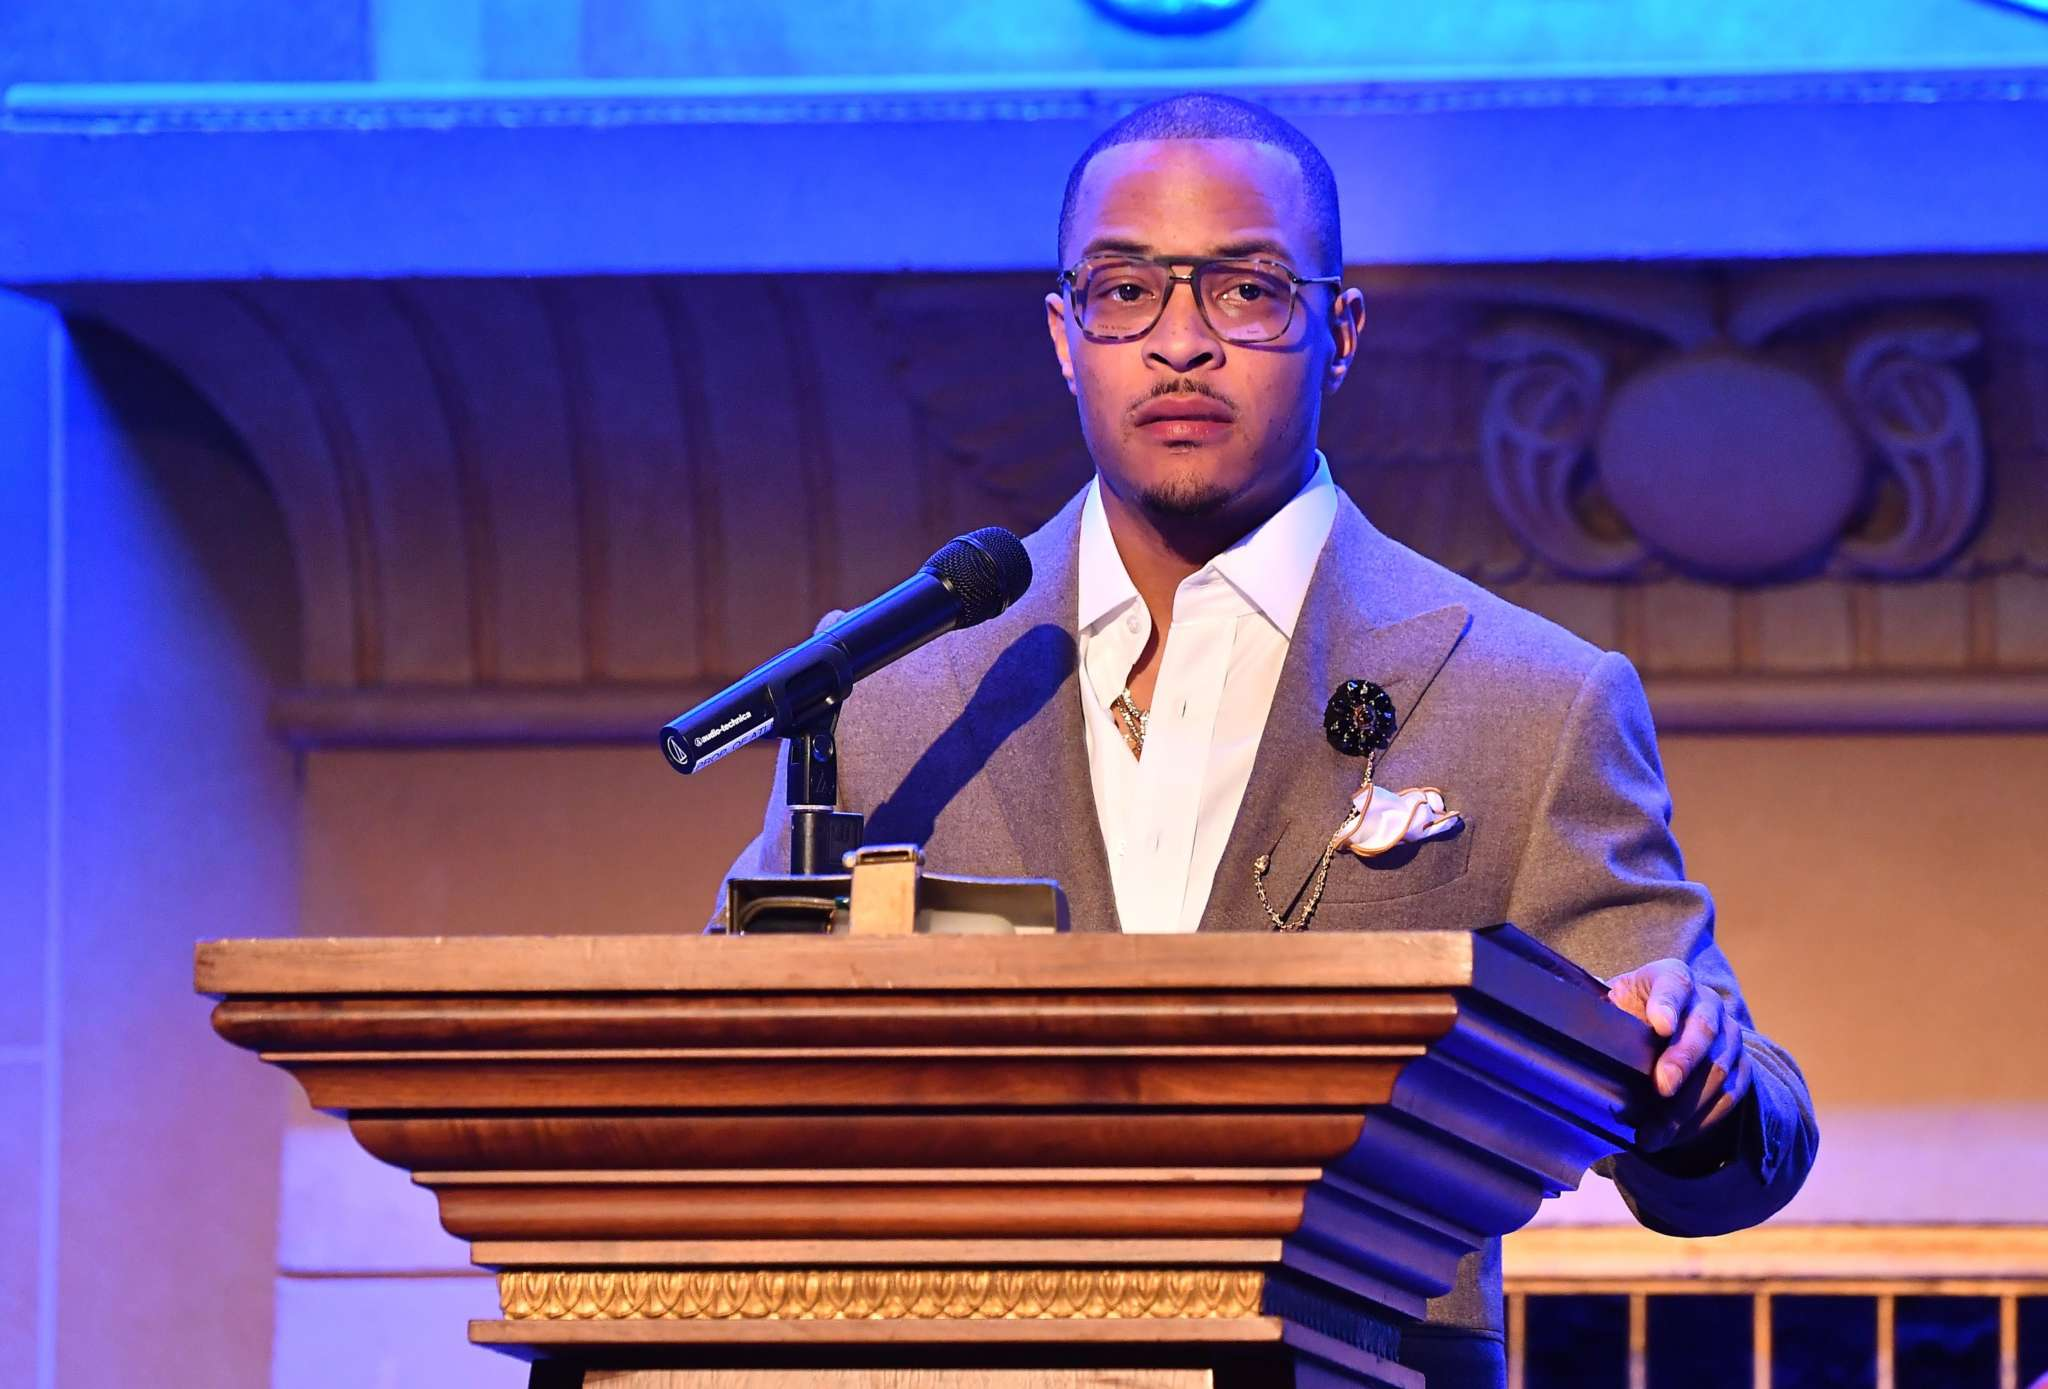 T.I. Impresses Fans With This Post About The 'Divide And Conquer Mechanisms'